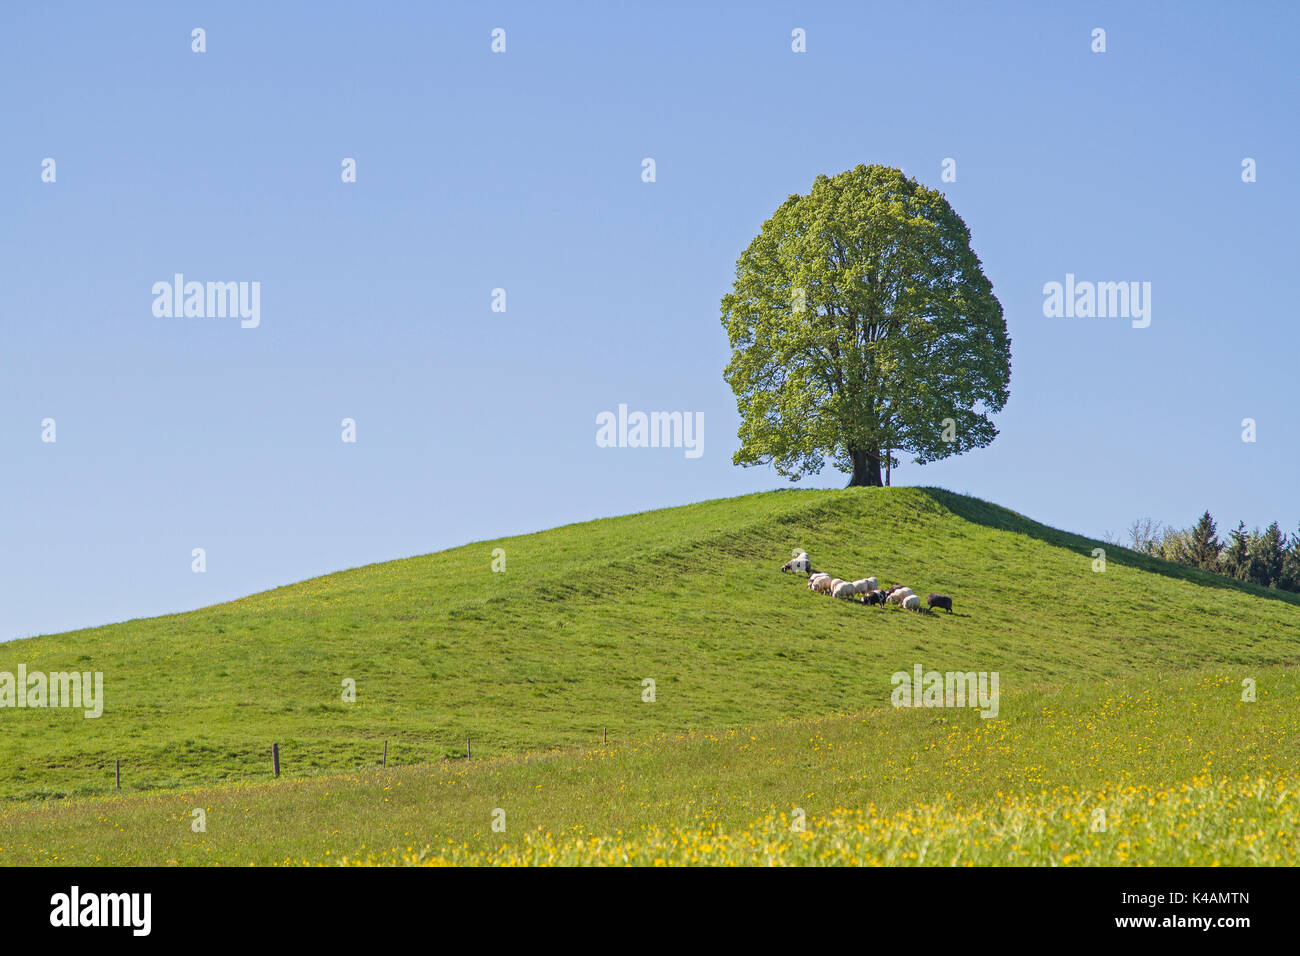 Individually Standing Deciduous Tree On The Moraine Hills Of Veiglberges Amid The Beautiful Foothills Of The Alps - Stock Image